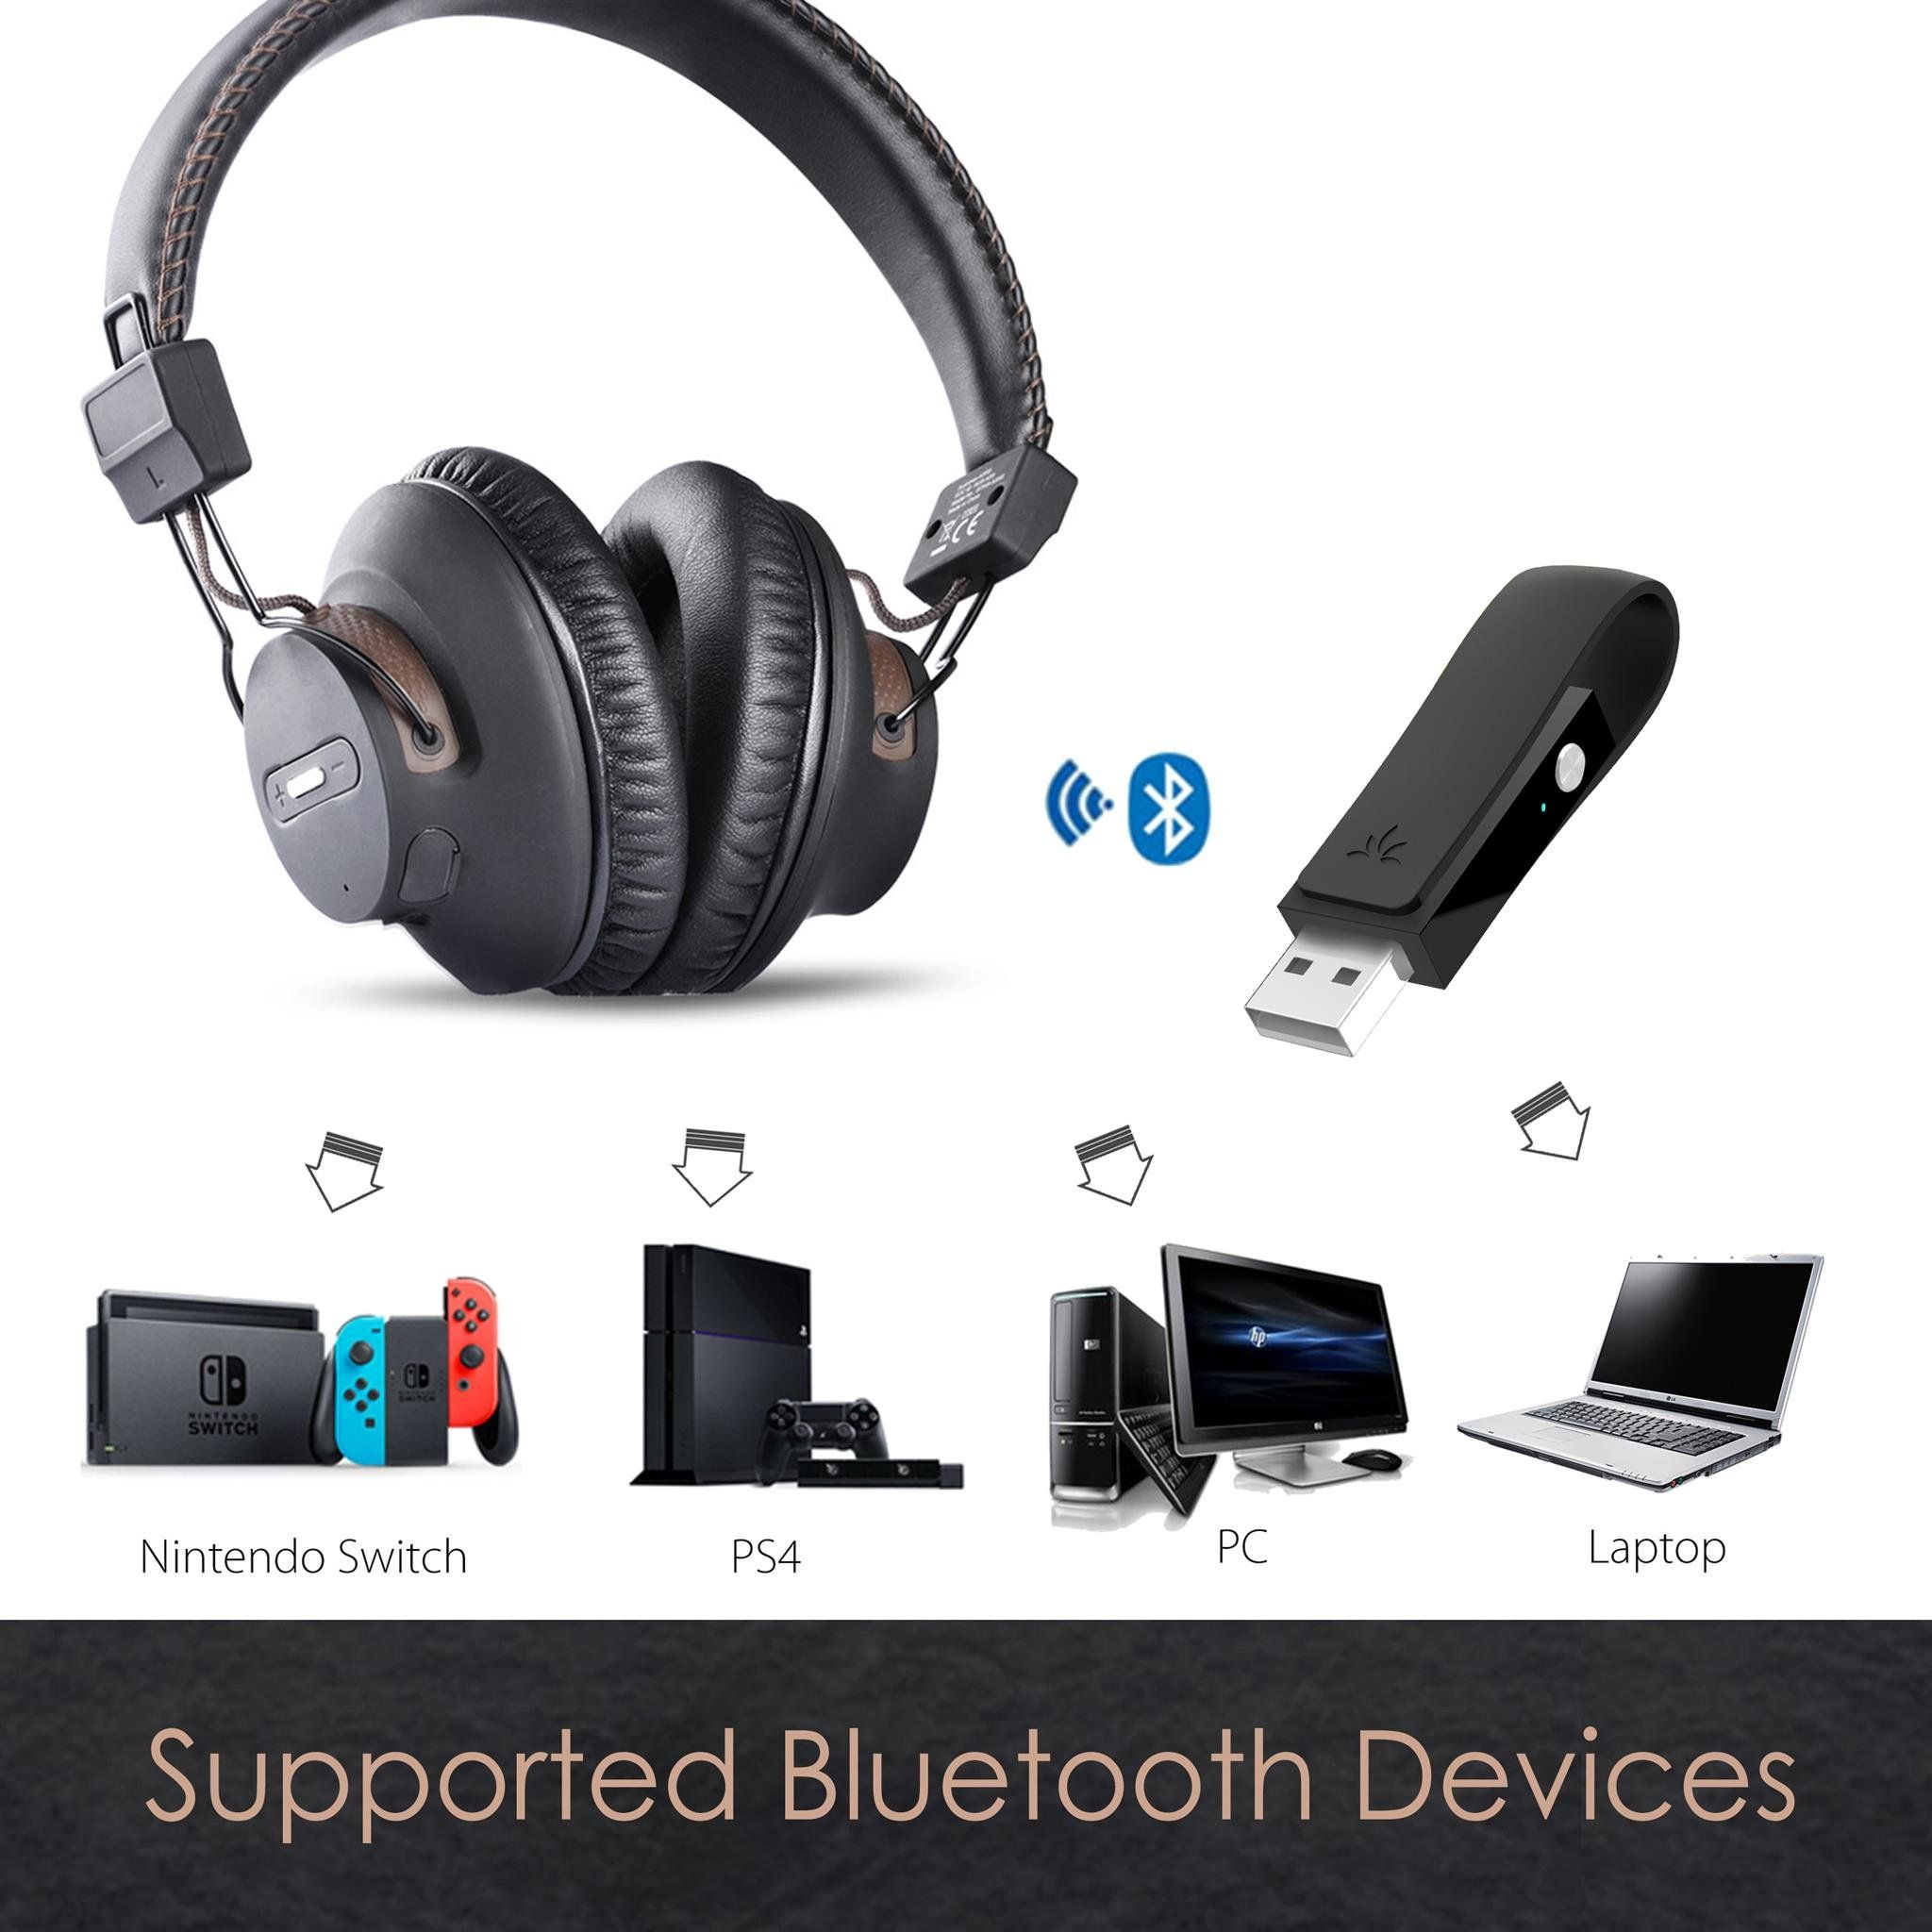 Avantree Dg59 Wireless Ps4 Gaming Headphones With Bluetooth Usb Audio Transmitter Set For Pc Nintendo Switch De Gaming Headphones Headphones Audio Transmitters